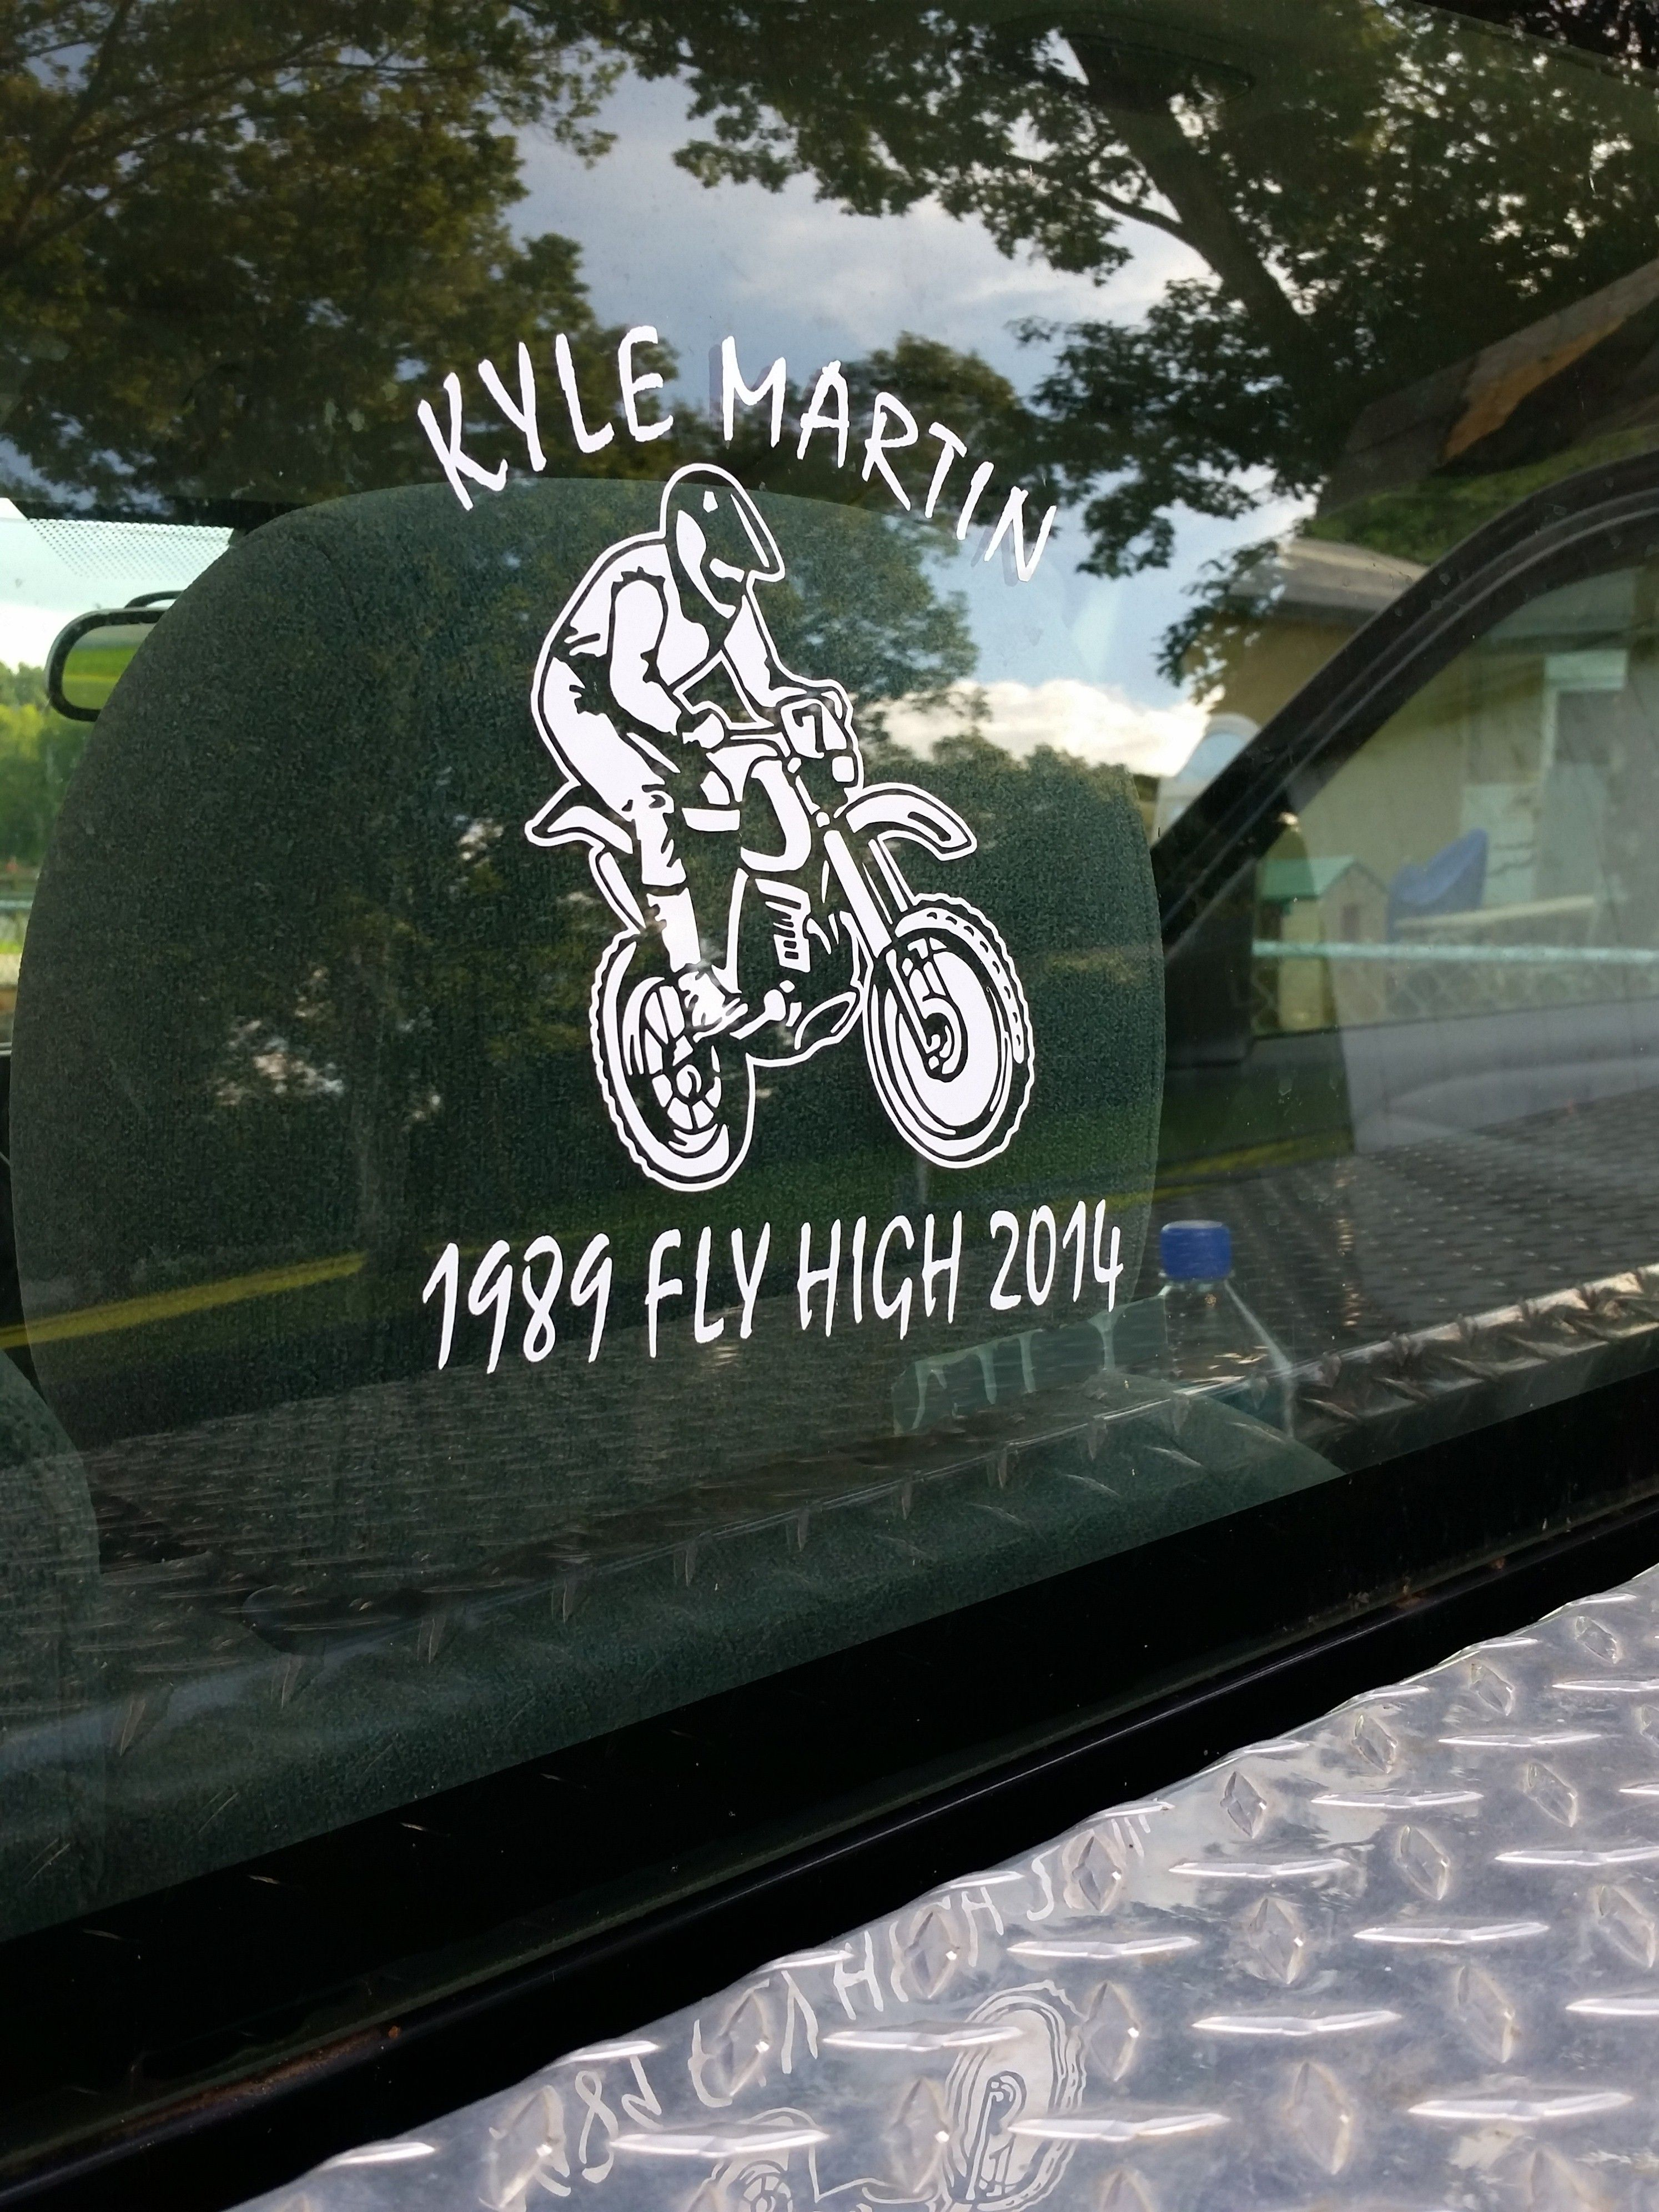 Make stickers for your car - Motocross Supercross Dirt Bike Rider Vinyl Stickers Add Your Own Text To Personalize And Make